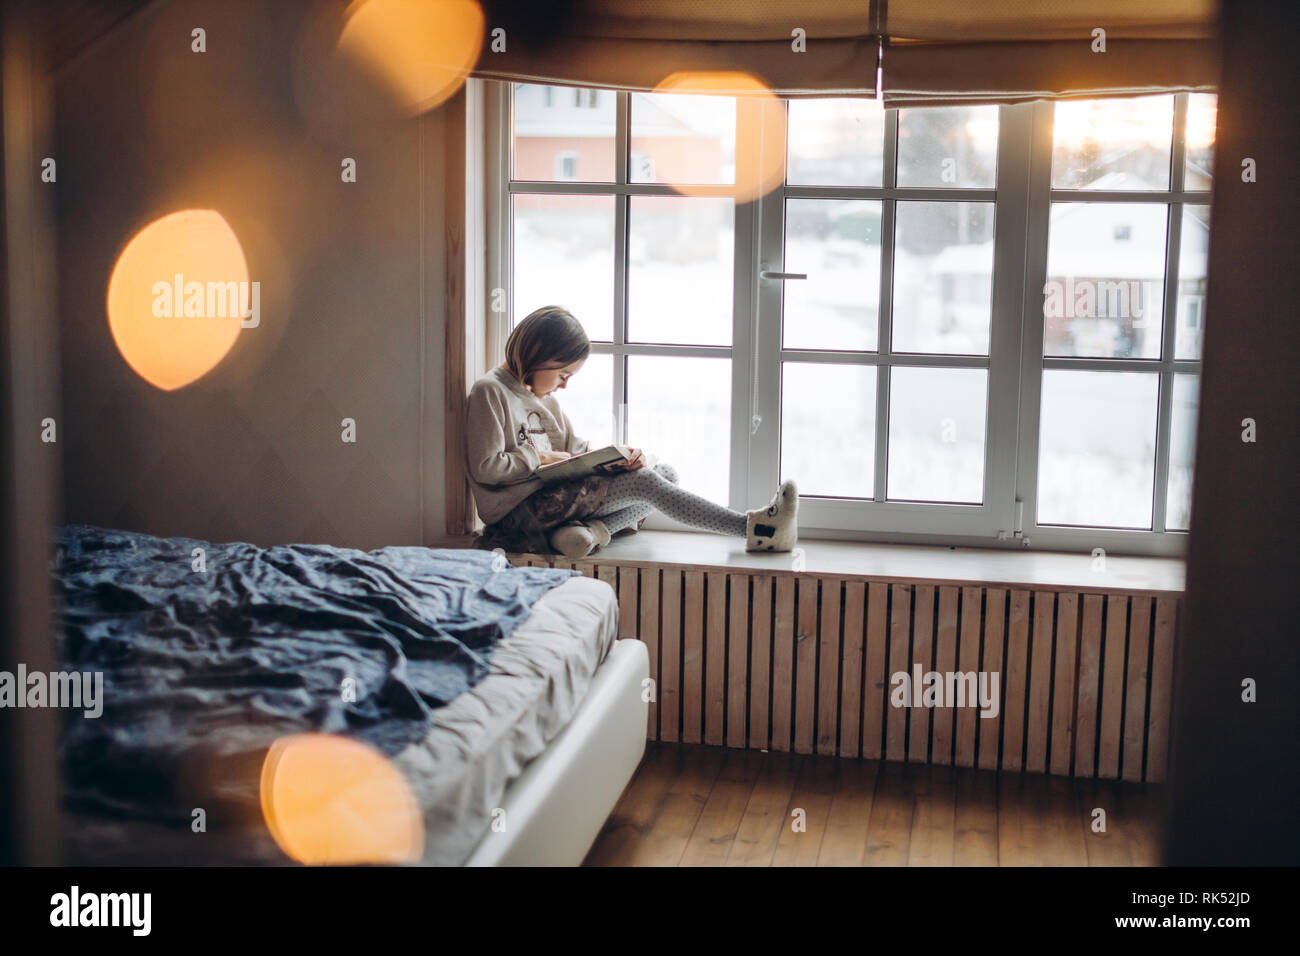 little awesome girl is doing homework on the windowsill in the bedroom. side view full length photo. loneliness. concentration Stock Photo